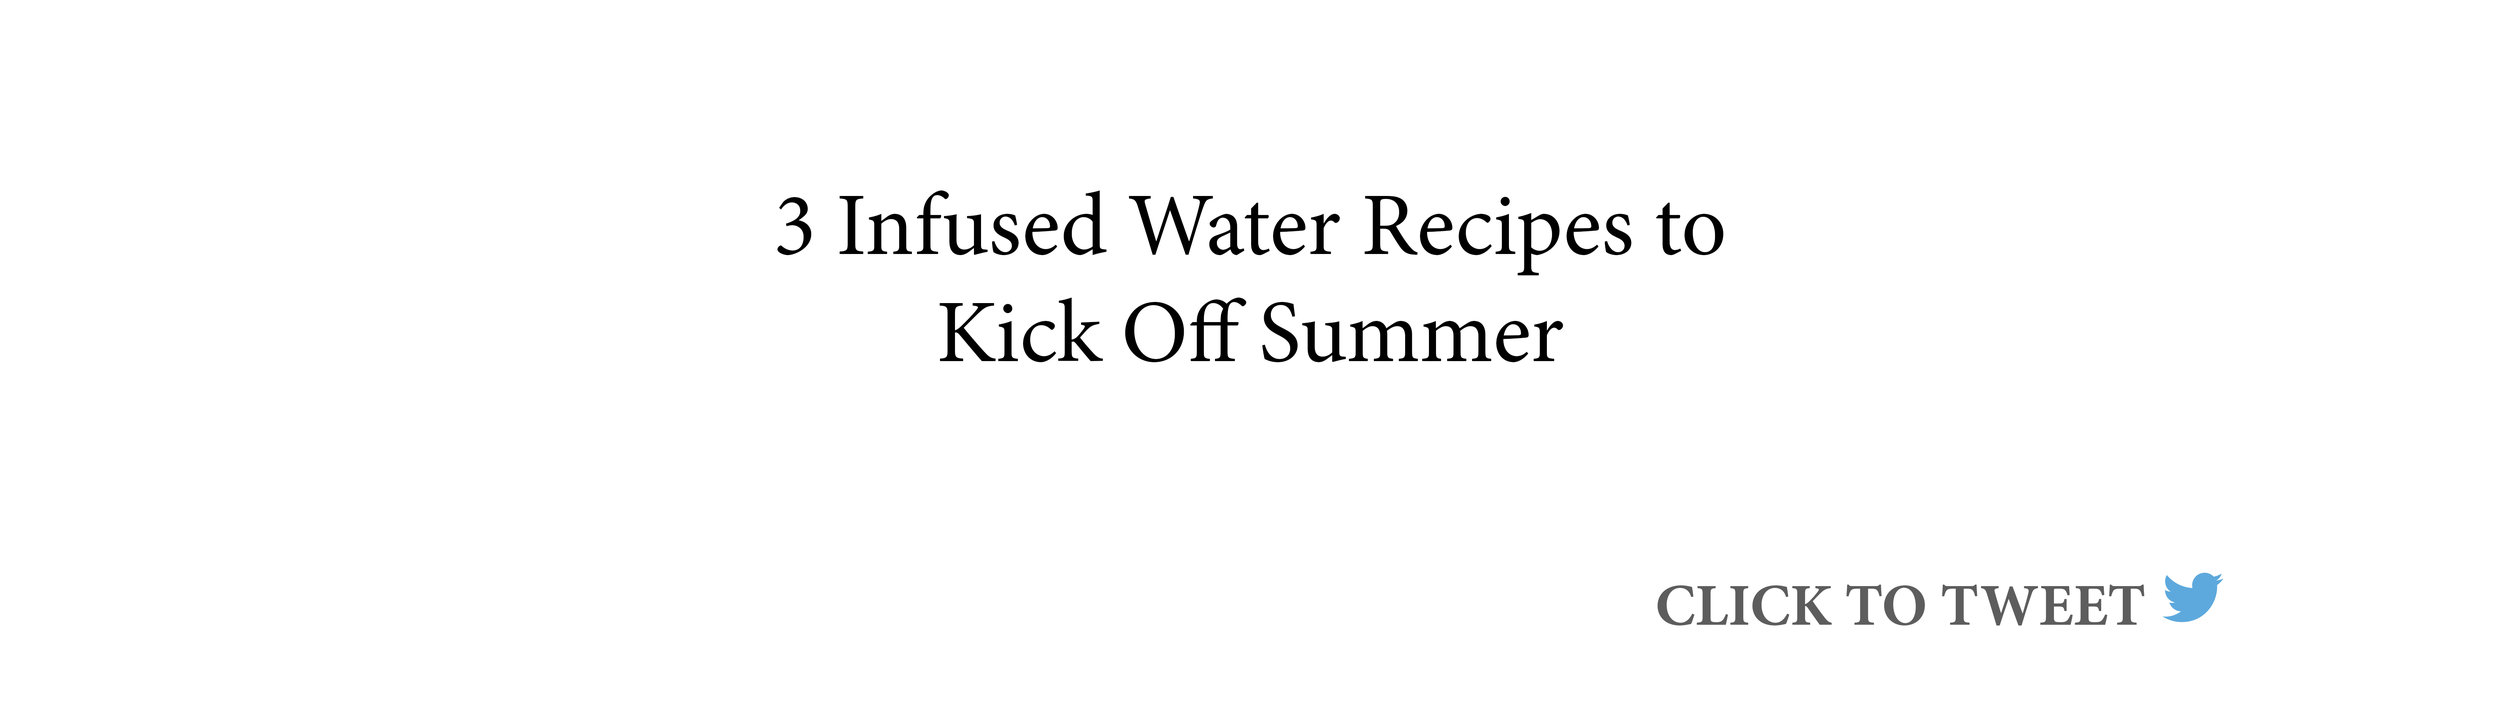 3-infused-water-recipes-to-kick-off-summer-click-to-tweet.jpg